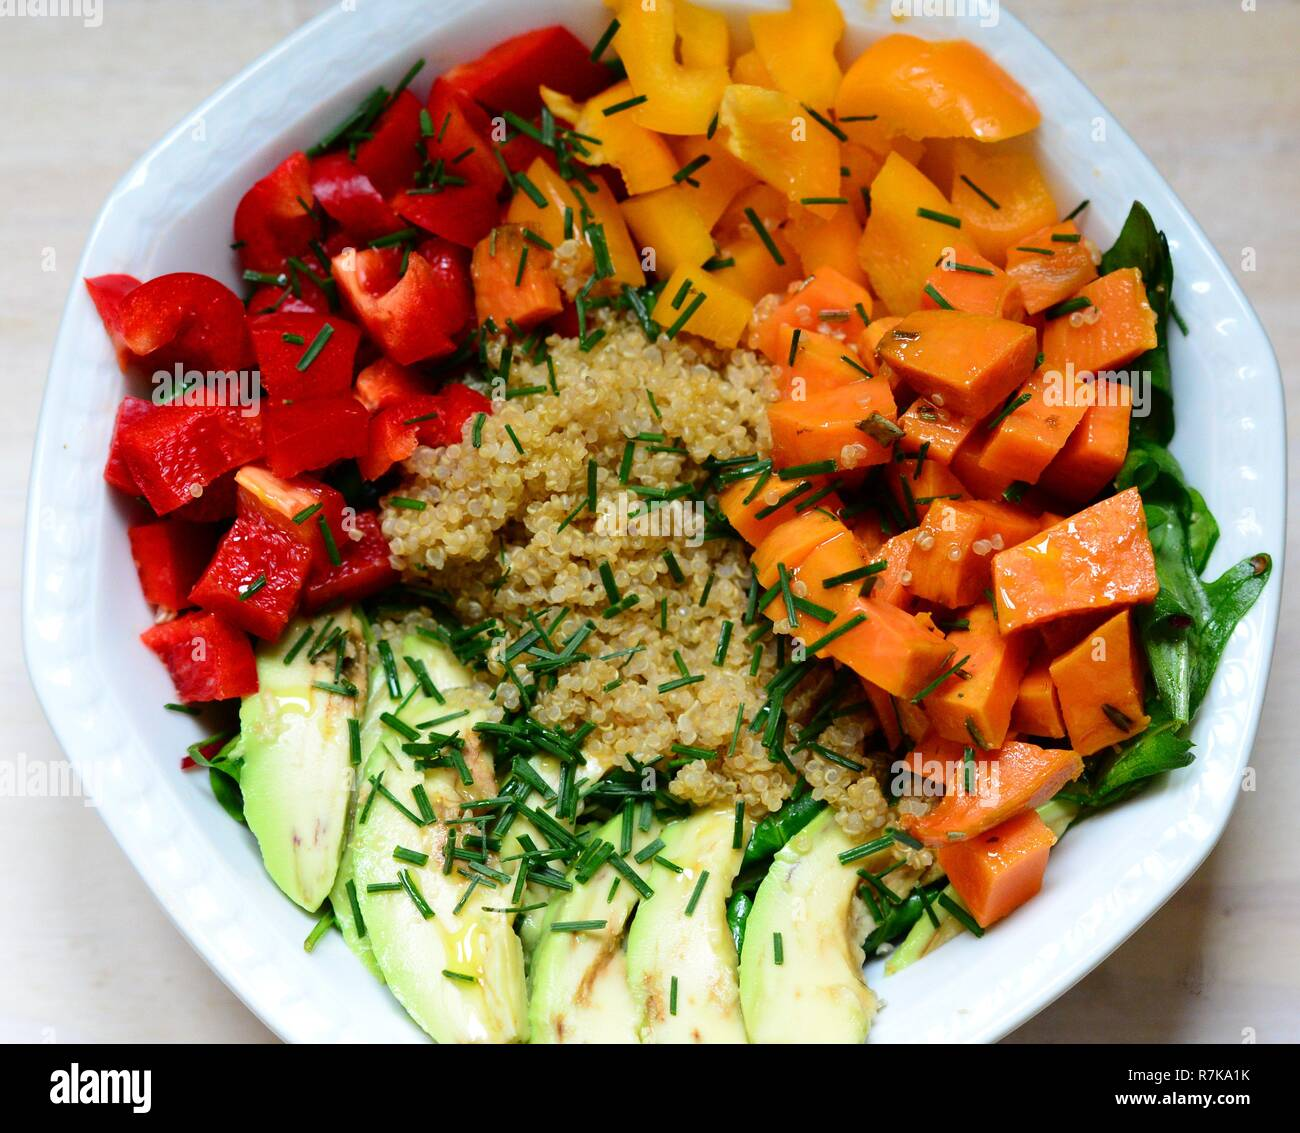 Tasty plant-based healthy and colorful real food - Stock Image